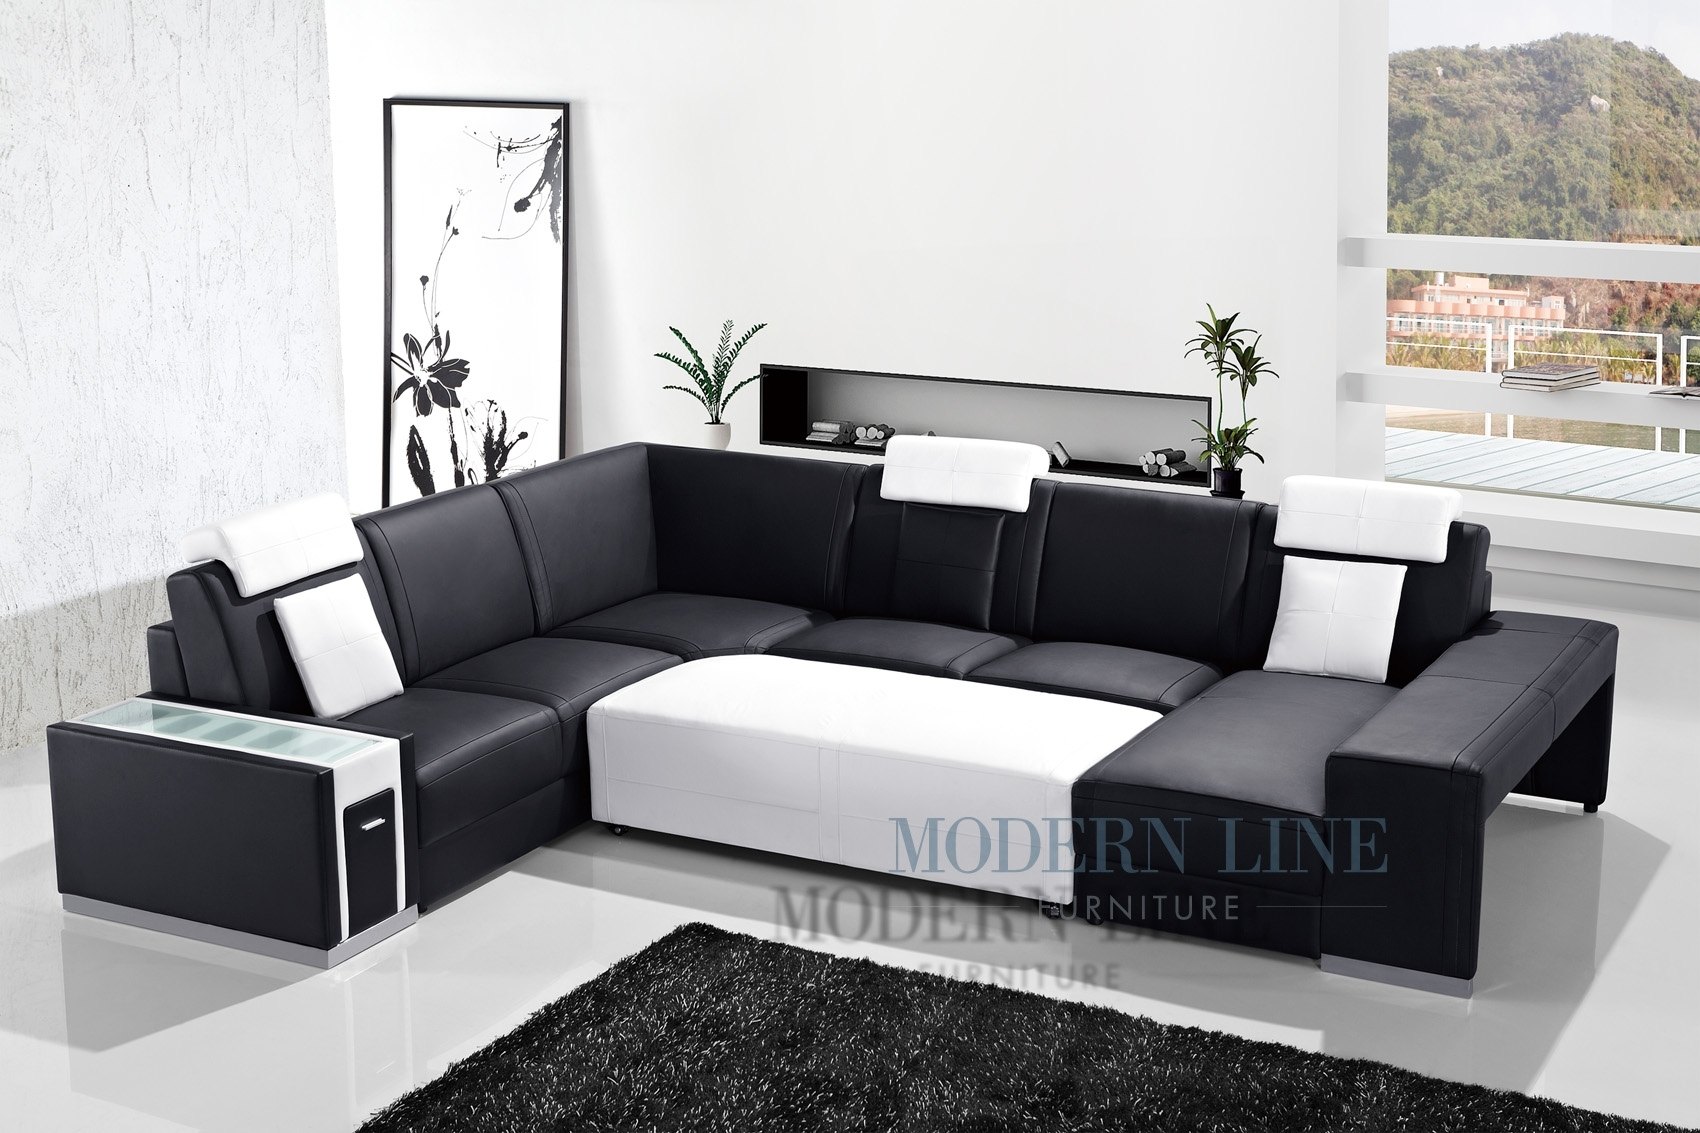 Awesome Black Leather Sectional With Ottoman Ideas - Liltigertoo inside Black Leather Sectionals With Ottoman (Image 2 of 15)